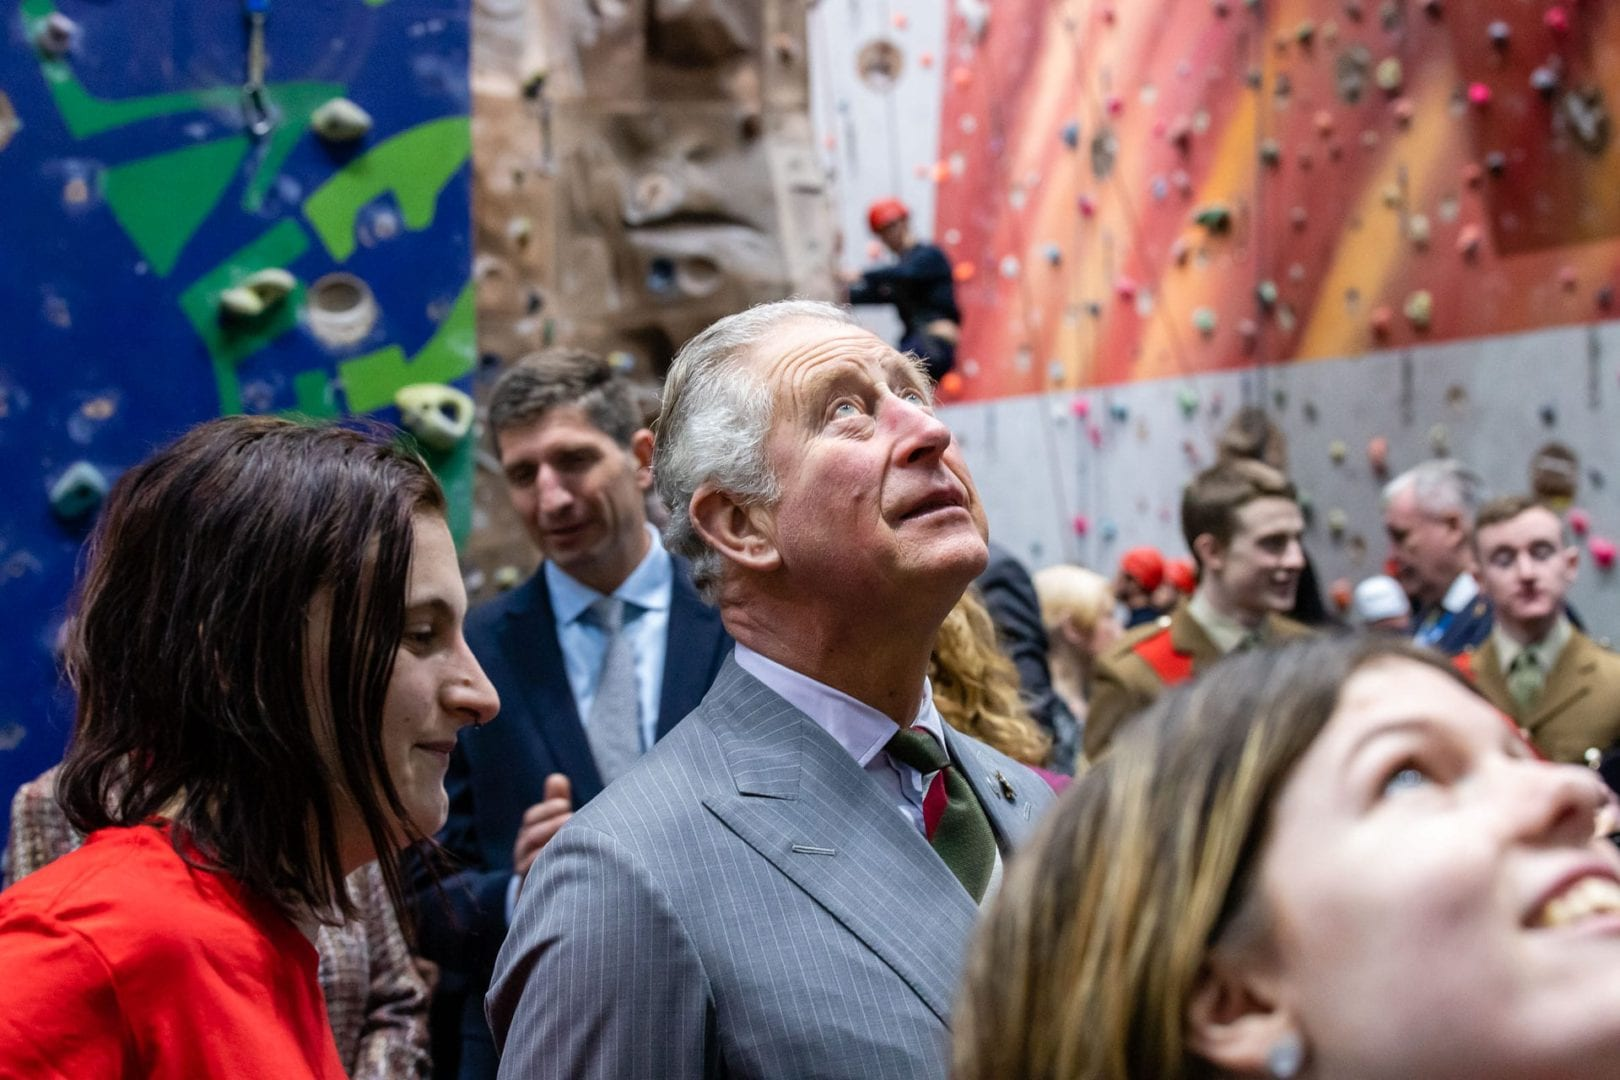 hrh prince of wales at event